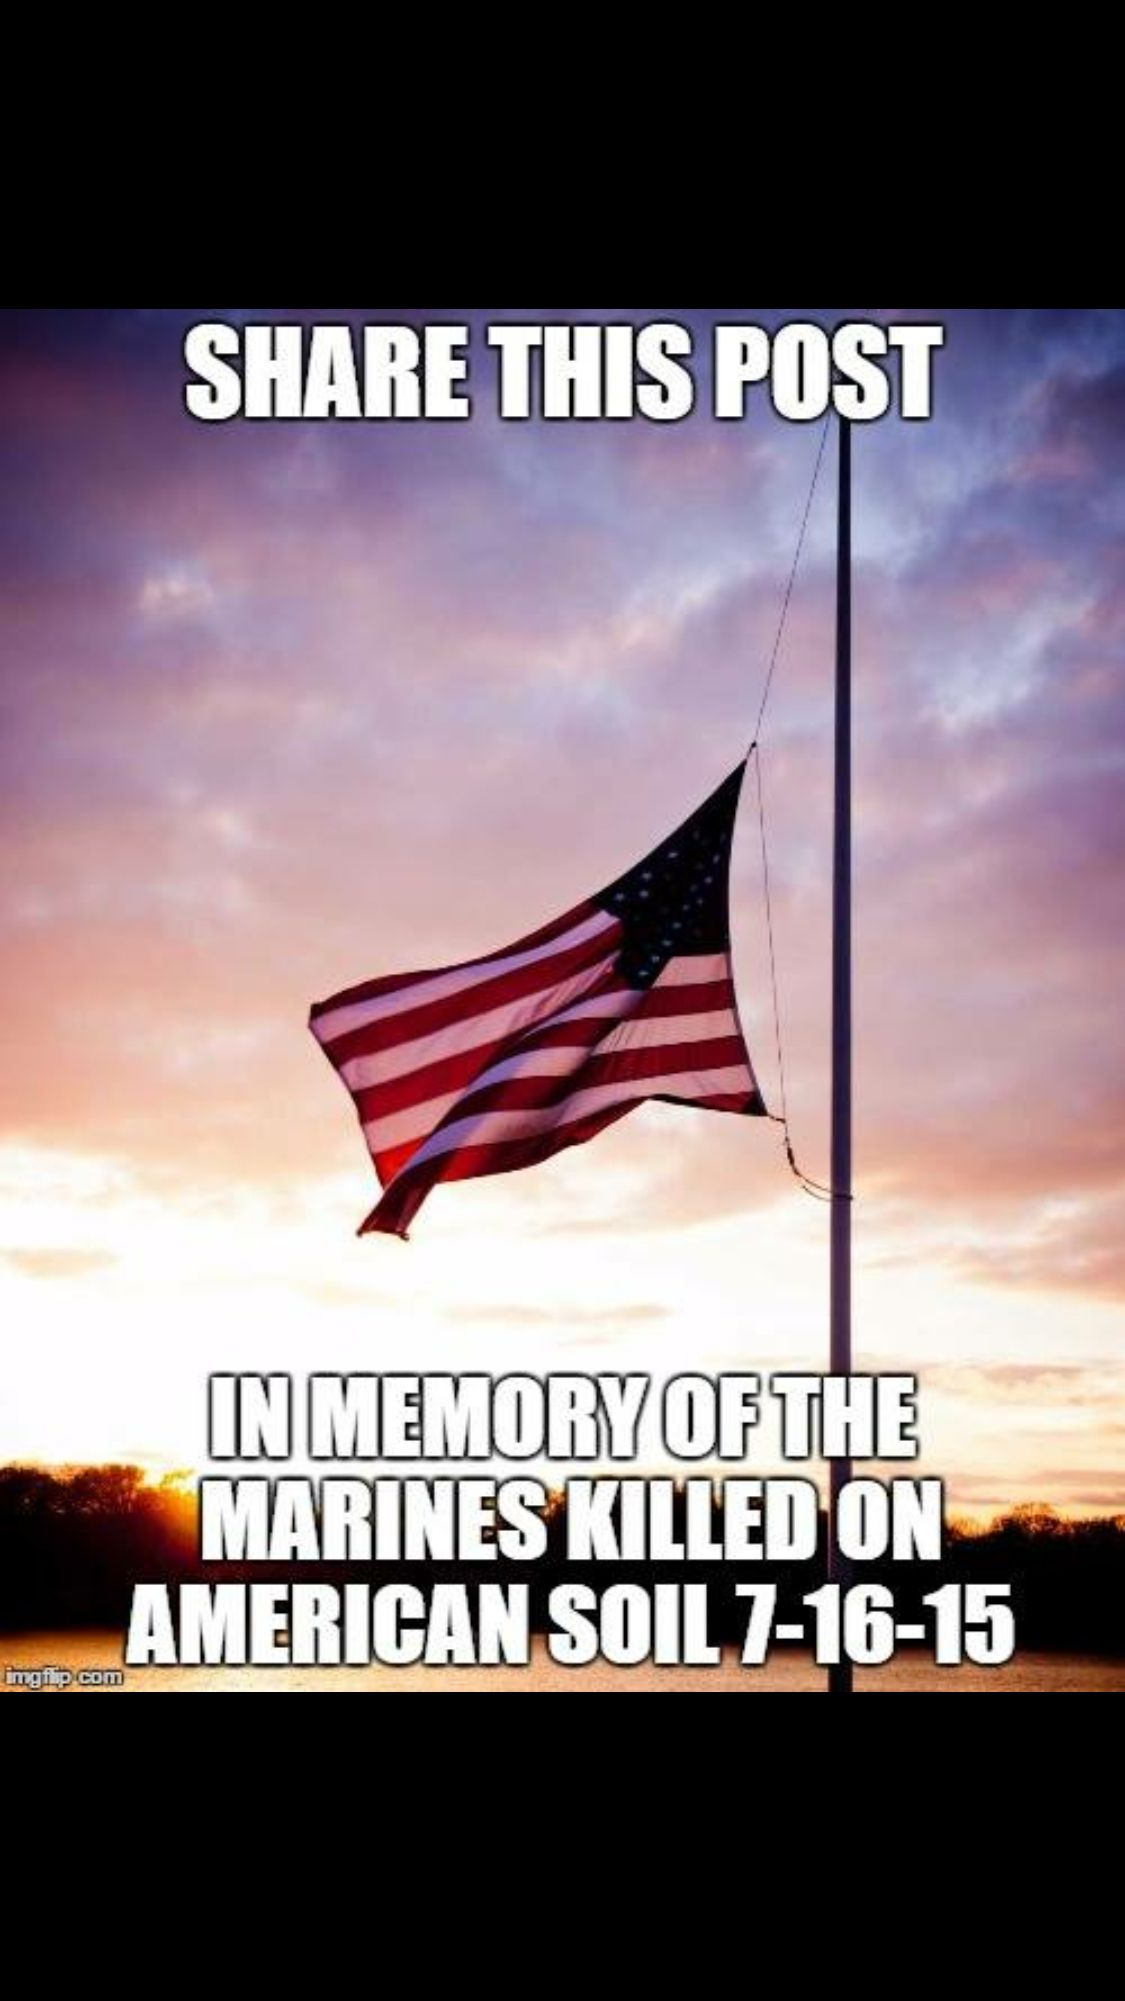 should flags be at half staff today